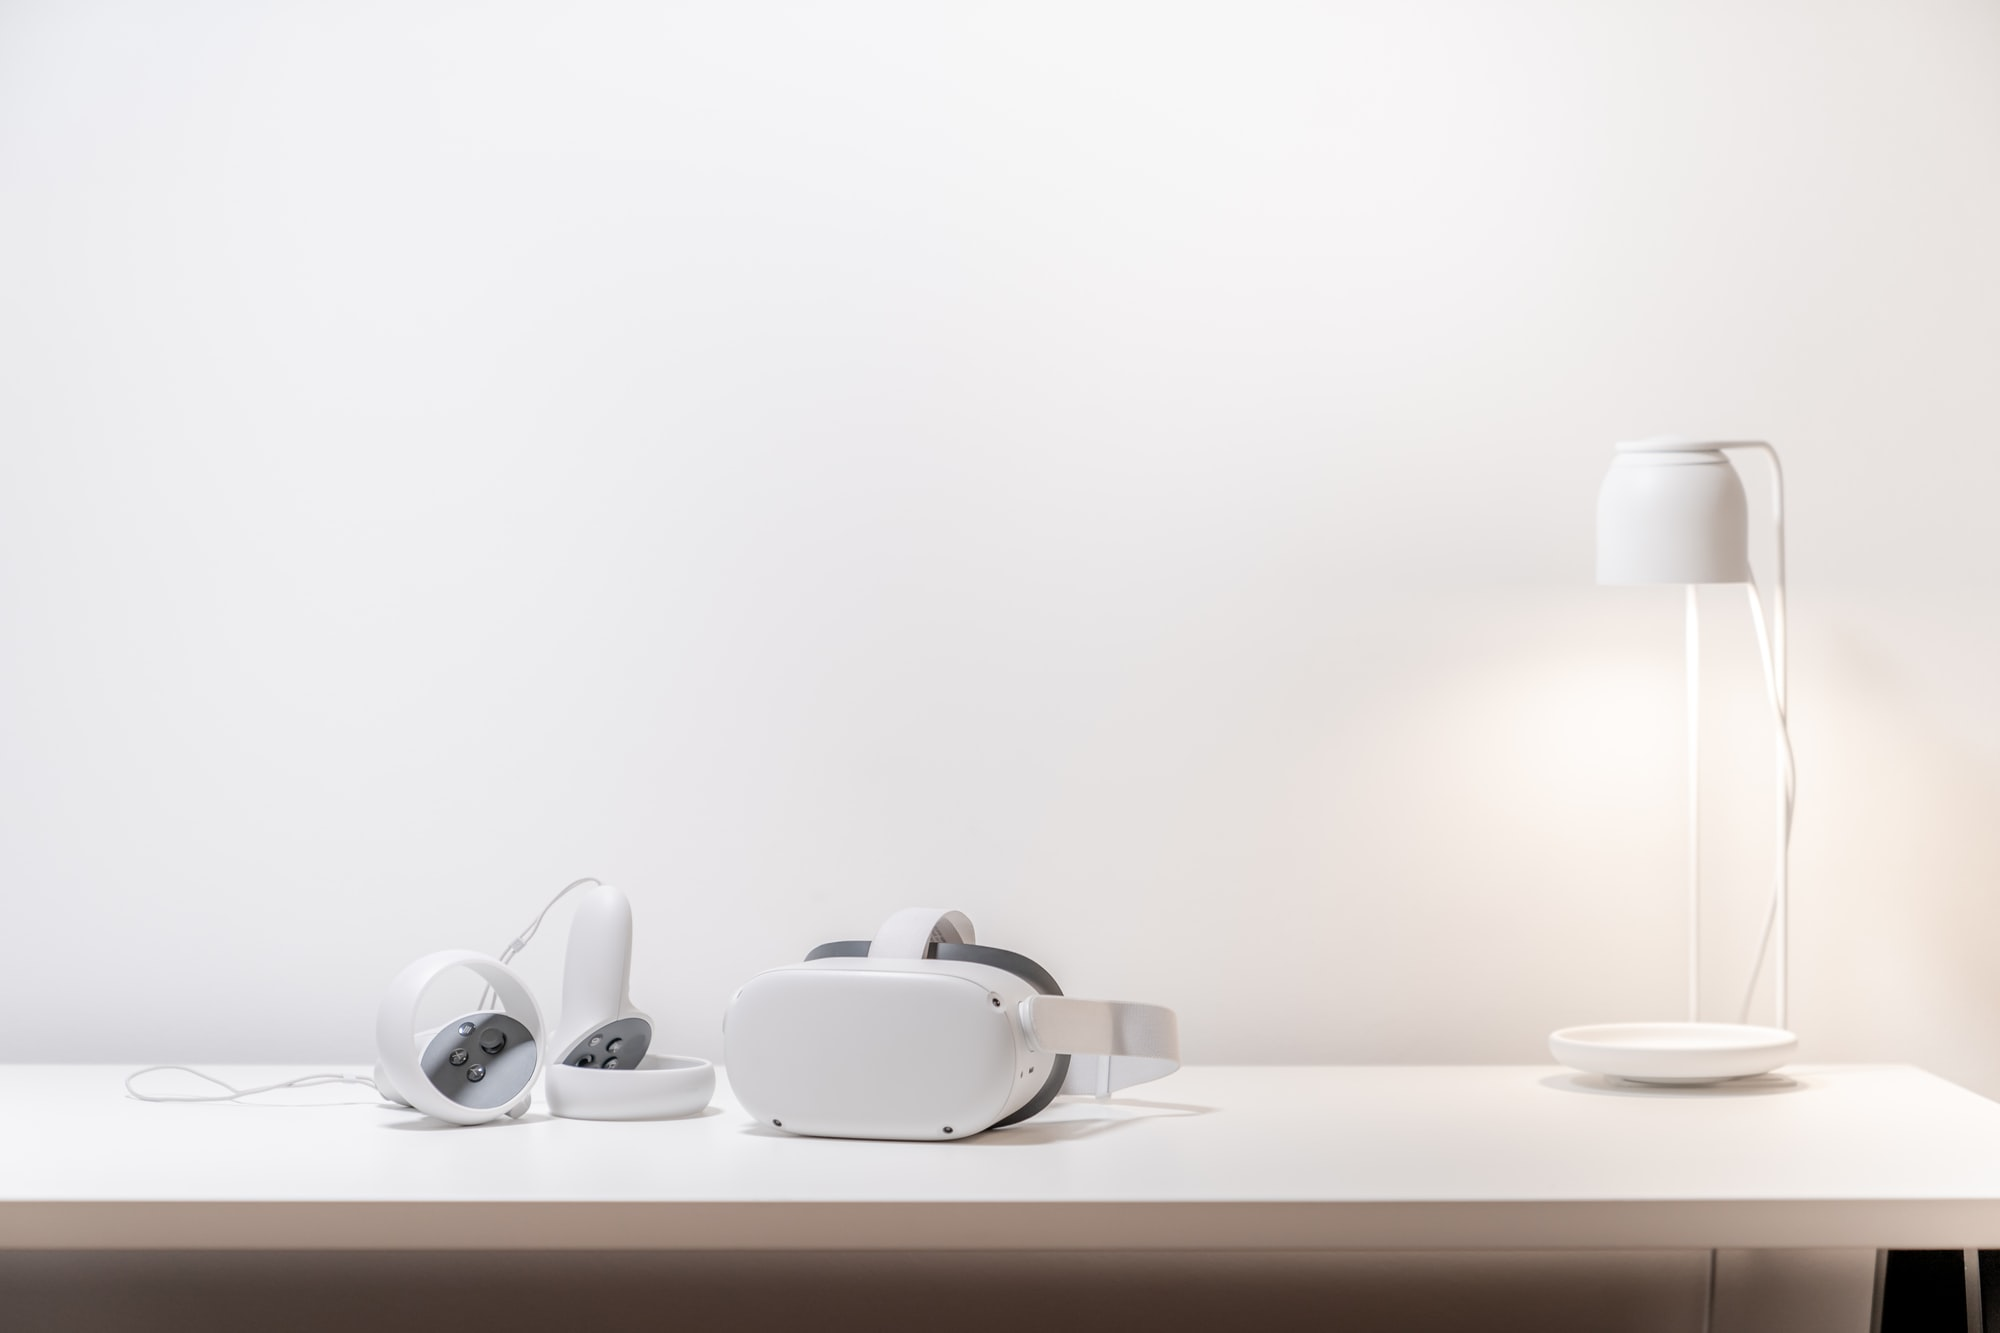 oculus quest 2 on white desk with lamp